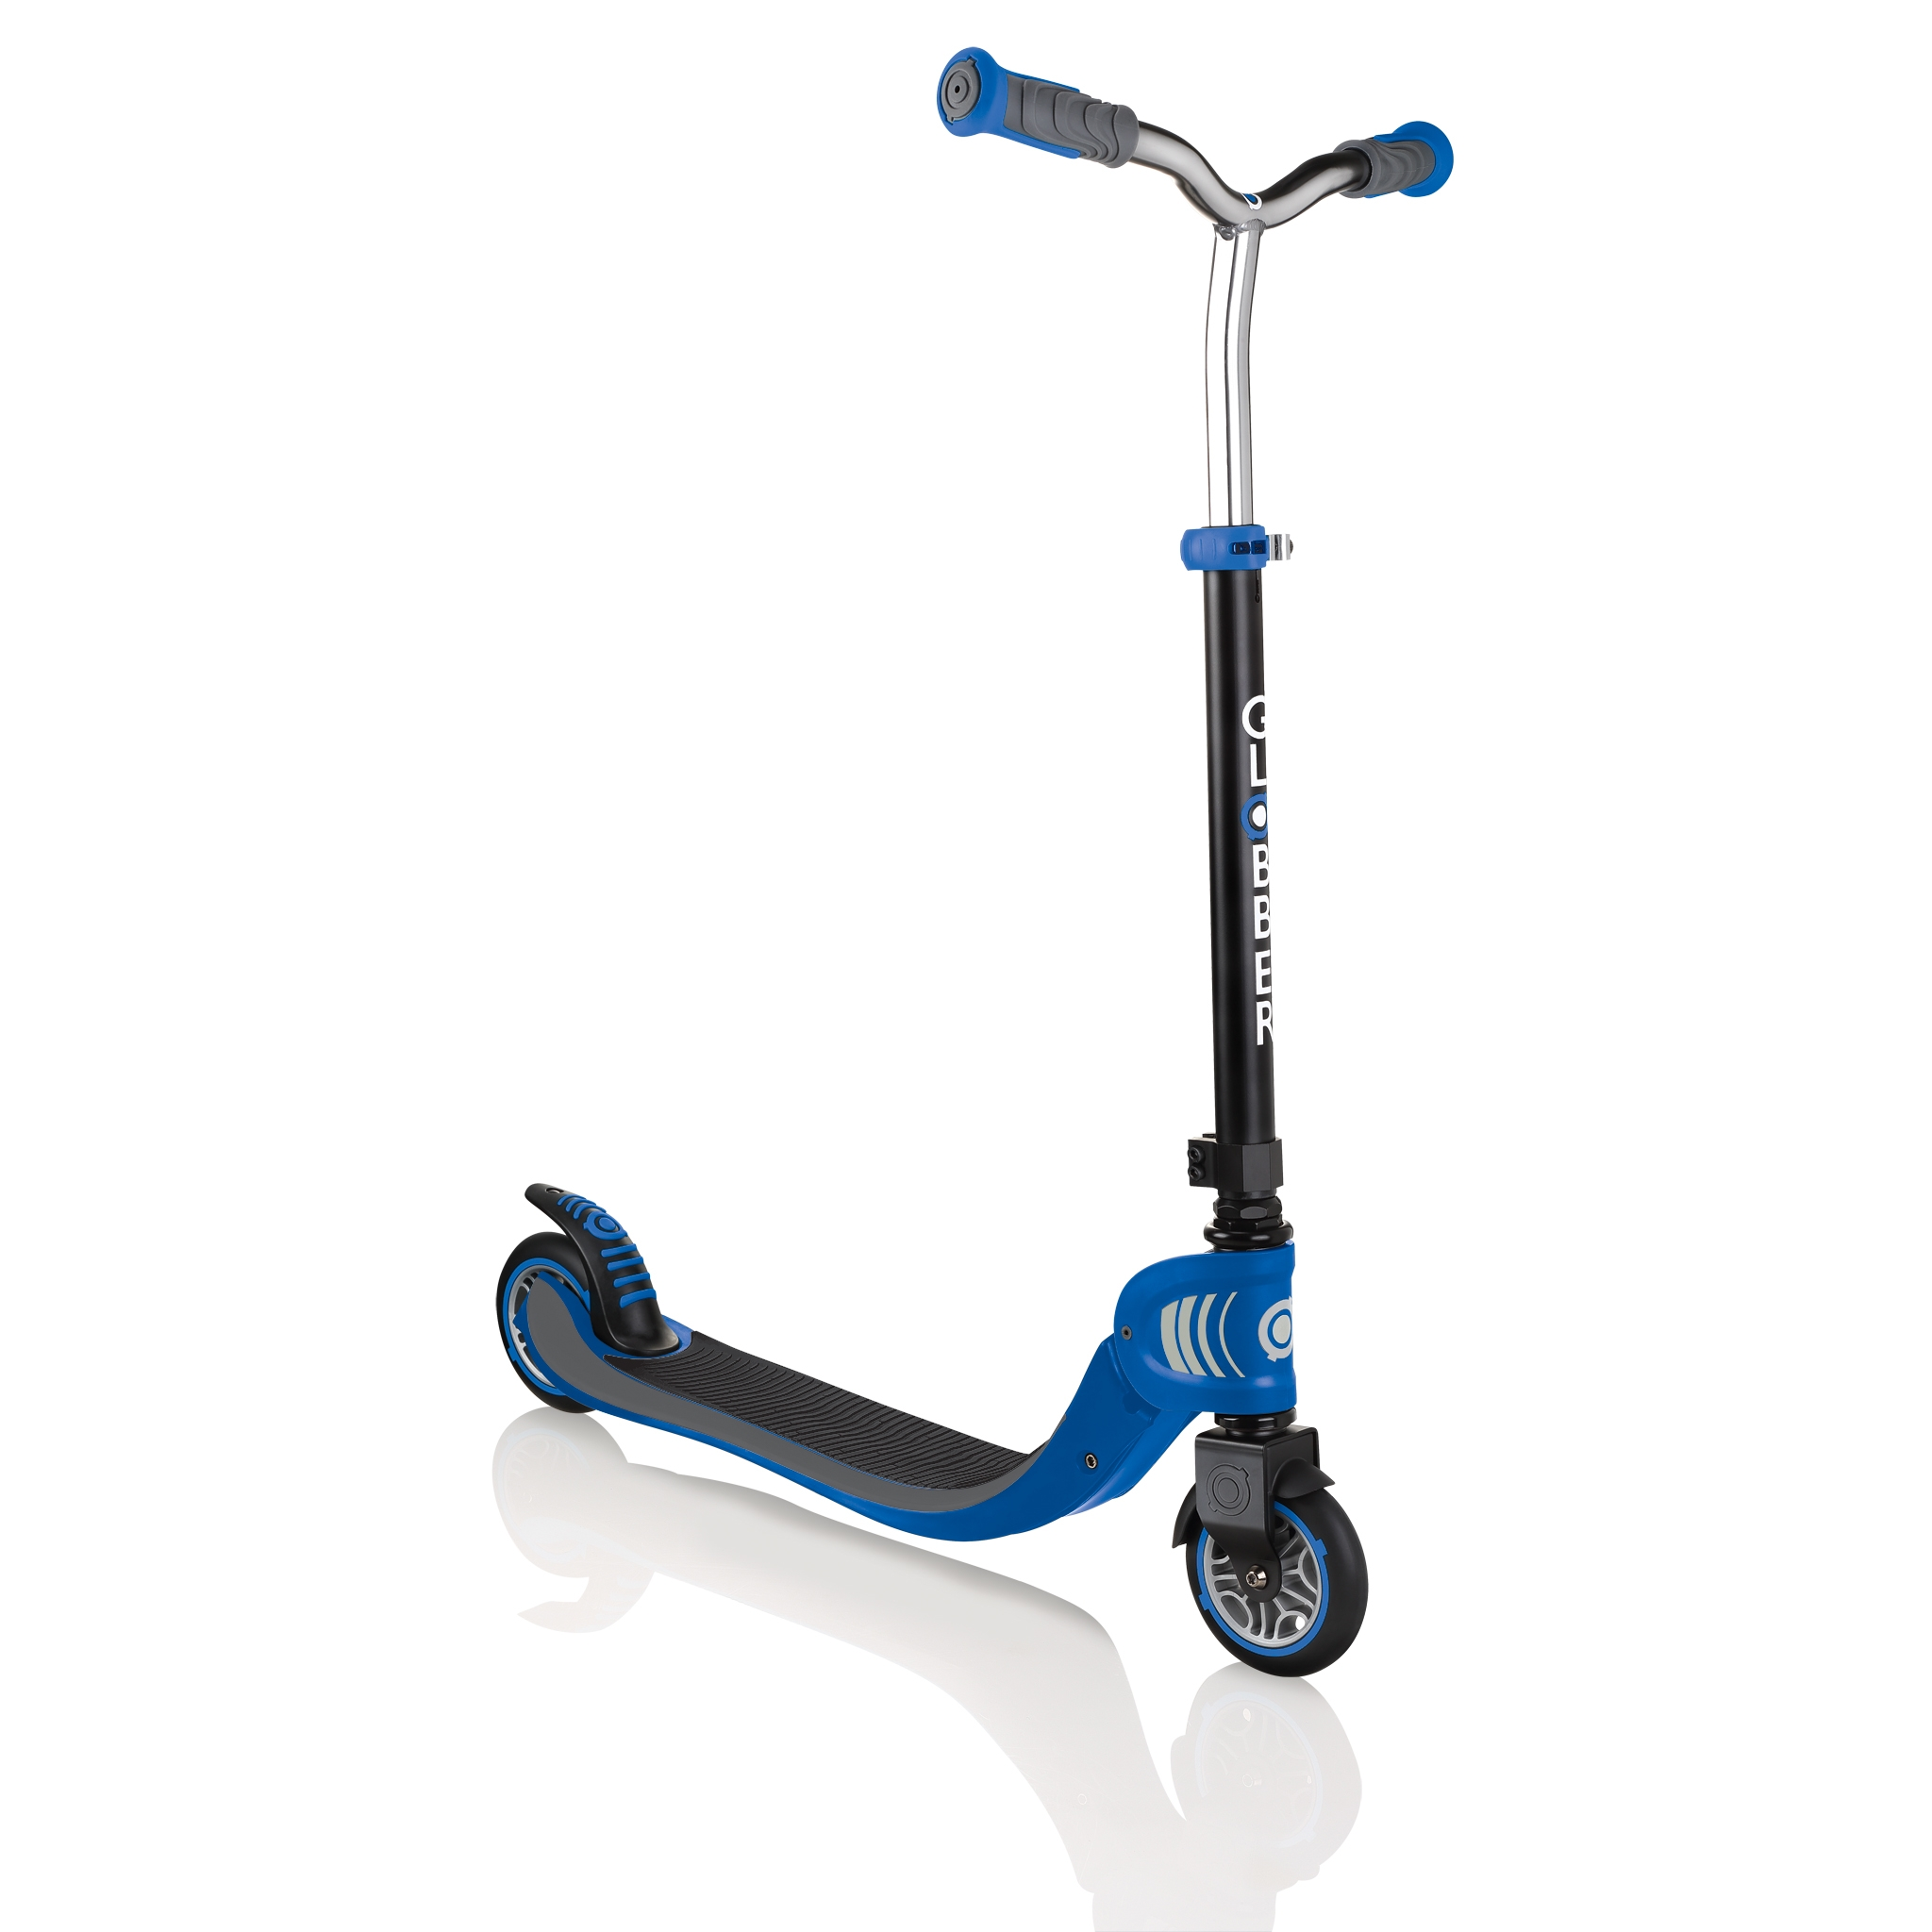 FLOW-FOLDABLE-125-2-wheel-scooter-for-kids-navy-blue